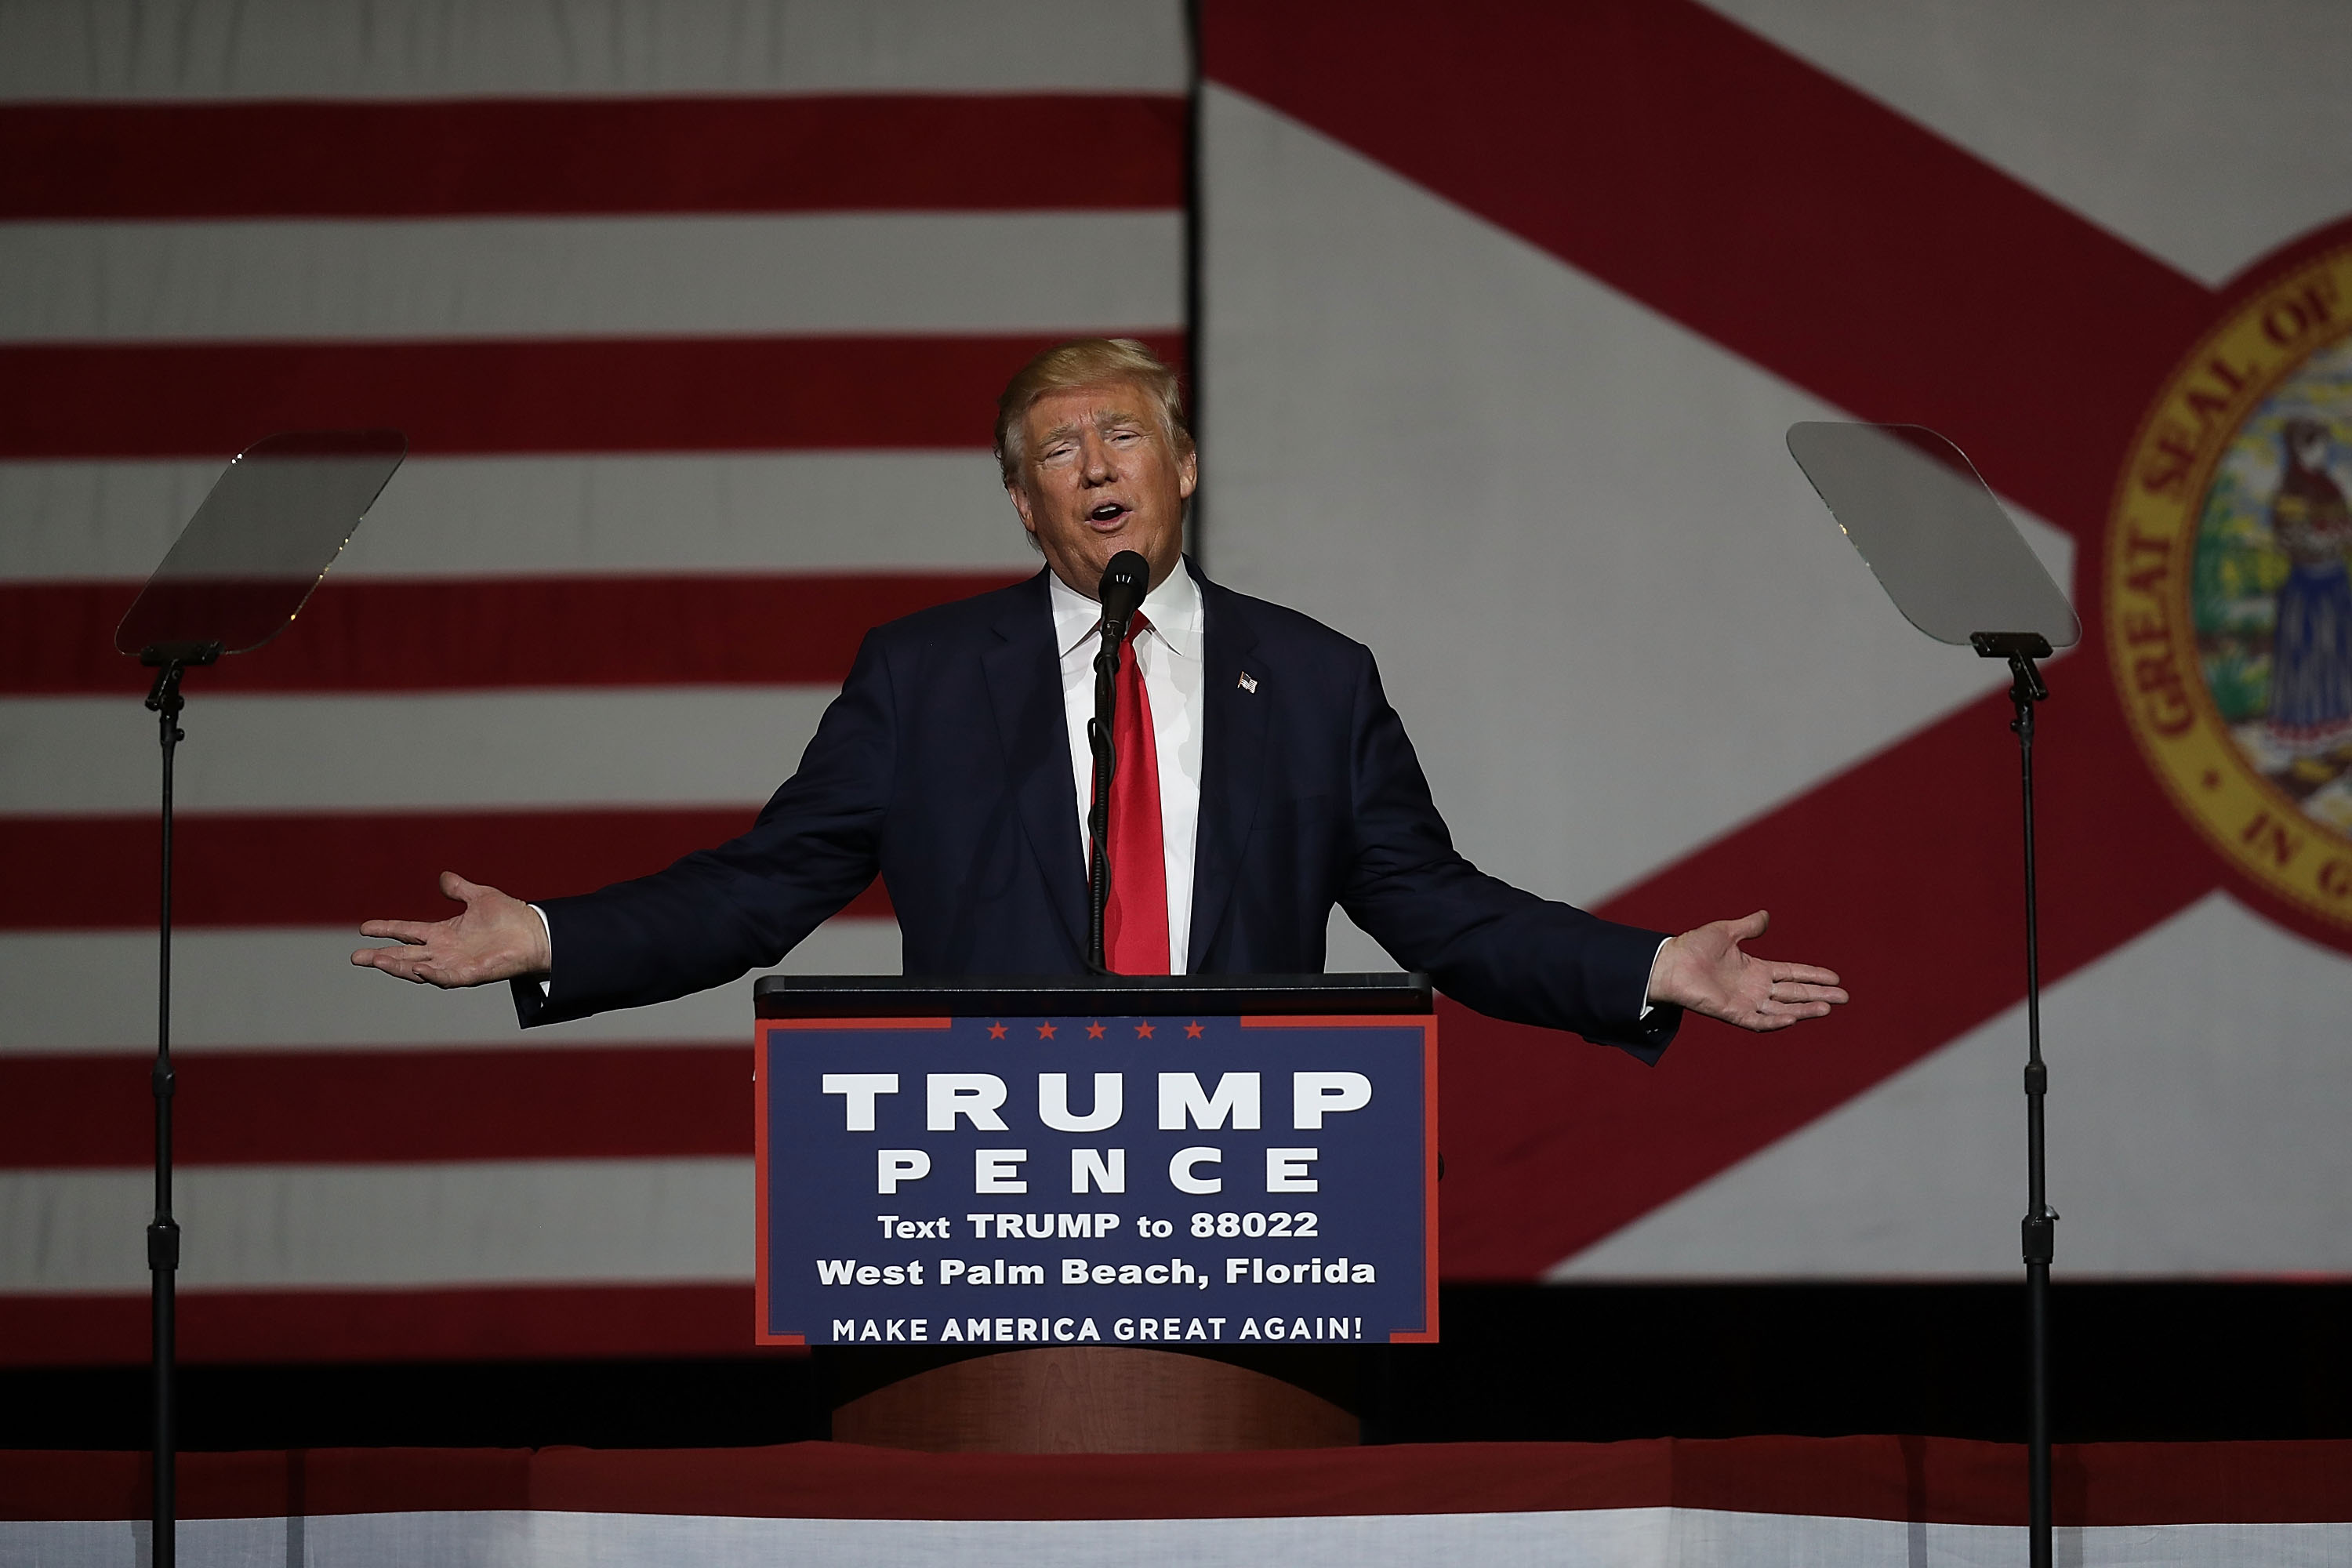 """WEST PALM BEACH, FL - OCTOBER 13: Republican presidential candidate Donald Trump speaks during a campaign rally at the South Florida Fair Expo Center on October 13, 2016 in West Palm Beach, Florida. In his remarks Trump vehemently denied recent allegations of past sexual assault and railed against mainstream media corruption and the """"Clinton machine"""". Joe Raedle/Getty Images/AFP"""